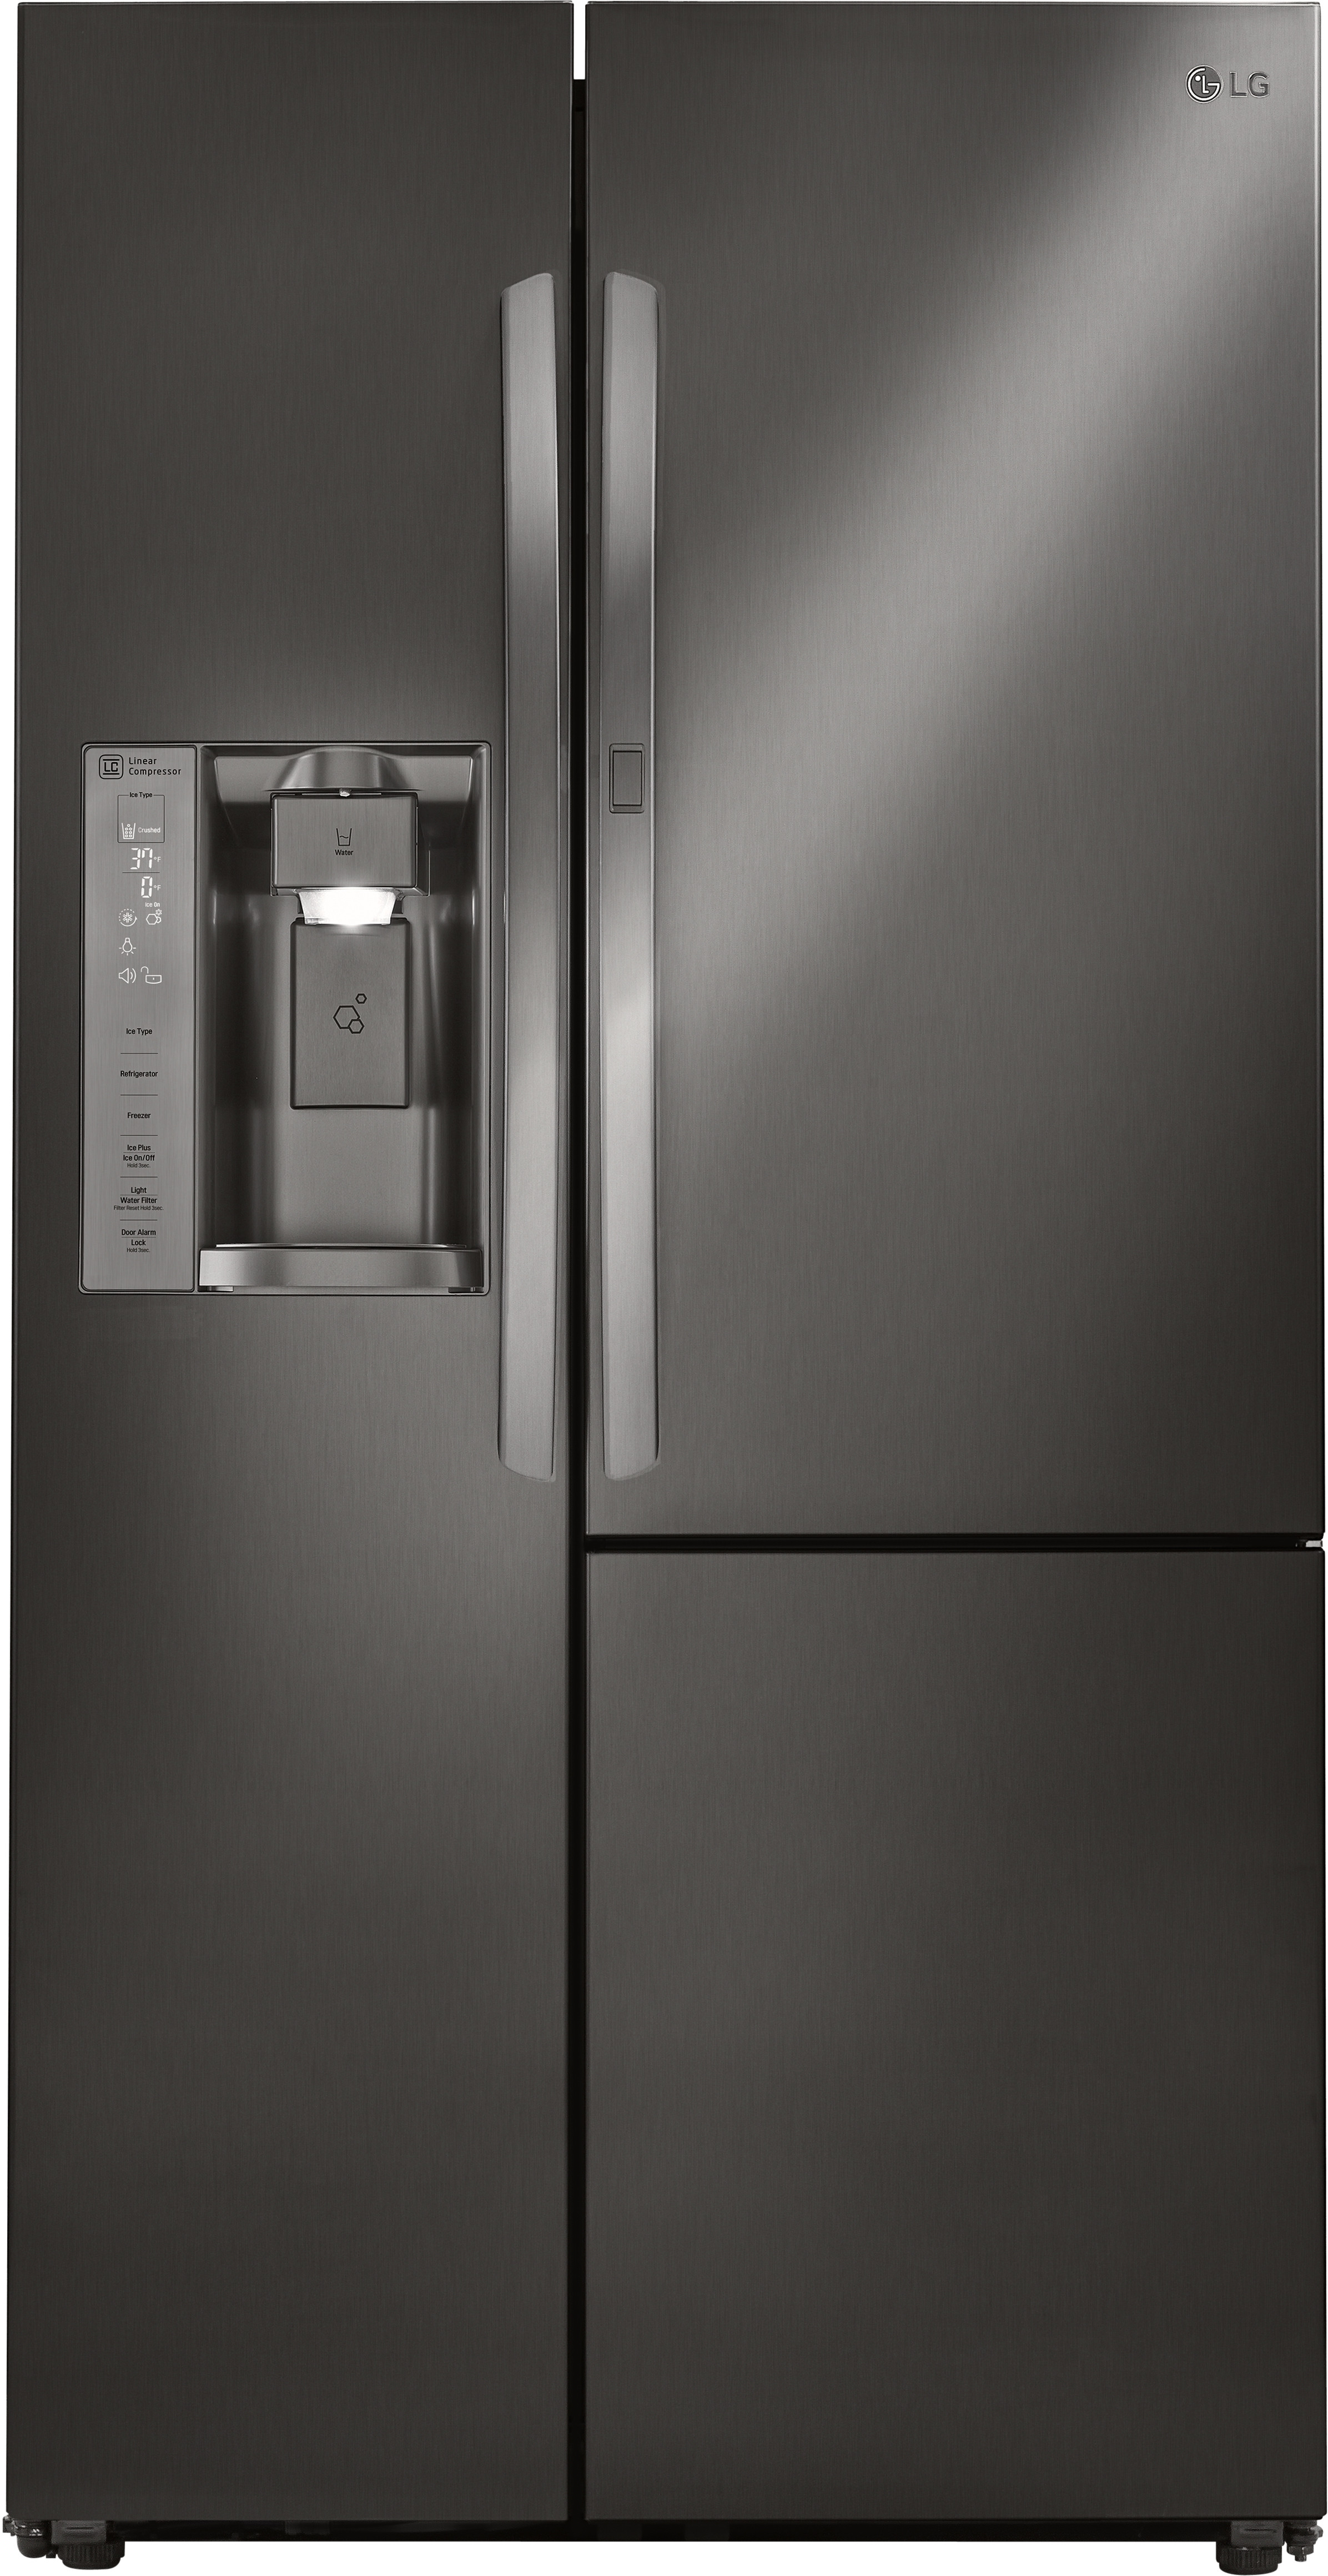 Lg Lsxs26366d 36 Inch Side By Refrigerator With Door In Coldsaver Panel Linear Compressor Ice And Water Dispenser Air Filter